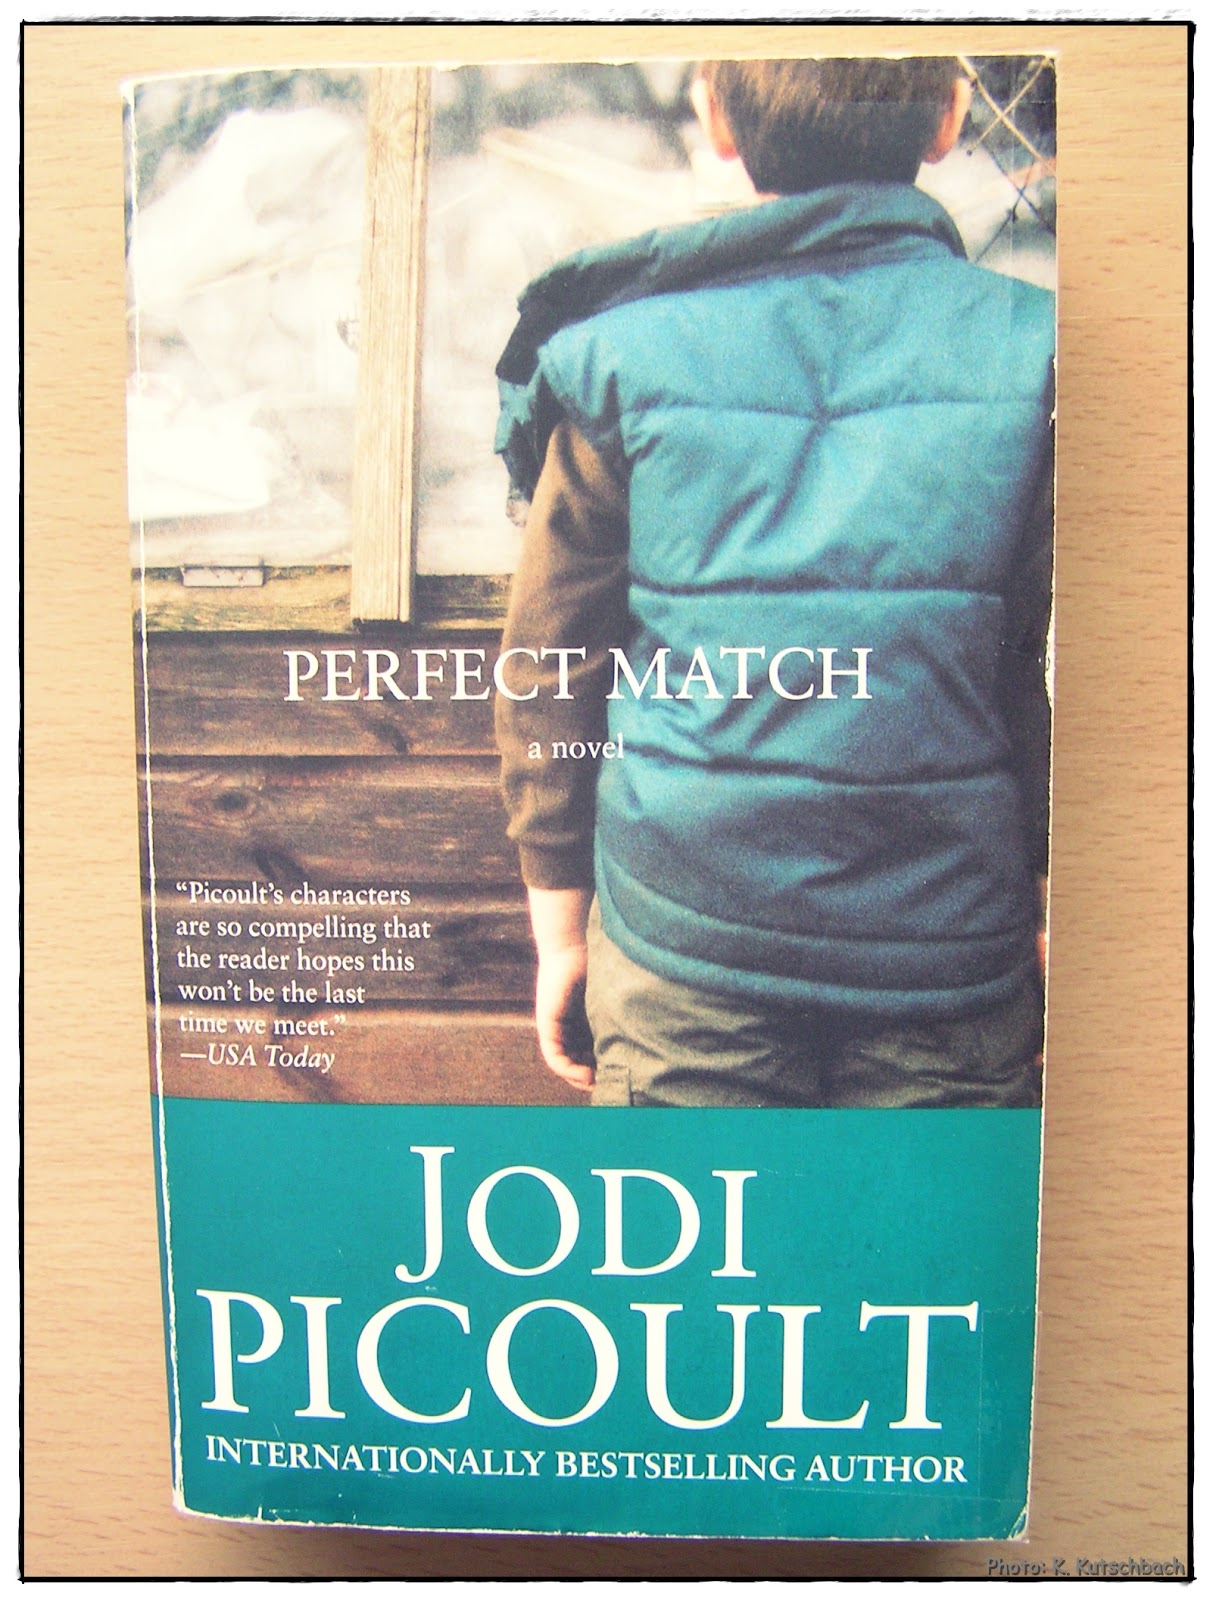 perfect match by jodi picoult Thu, 21 jun 2018 02:38:00 gmt perfect match jodi picoult pdf - lone wolf is a 2012 new york times bestselling novel by american author jodi picoult.